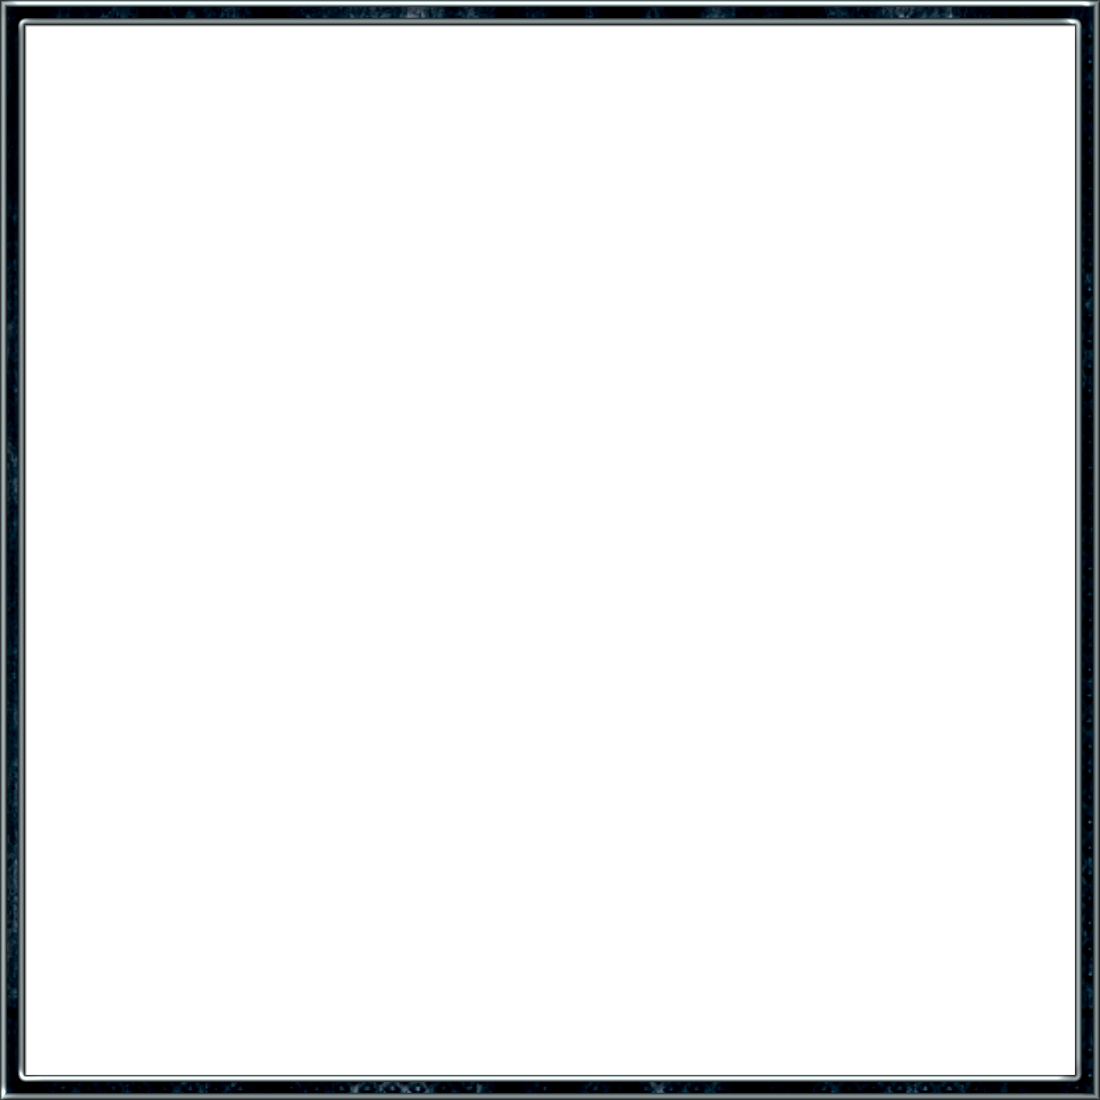 square white frame png